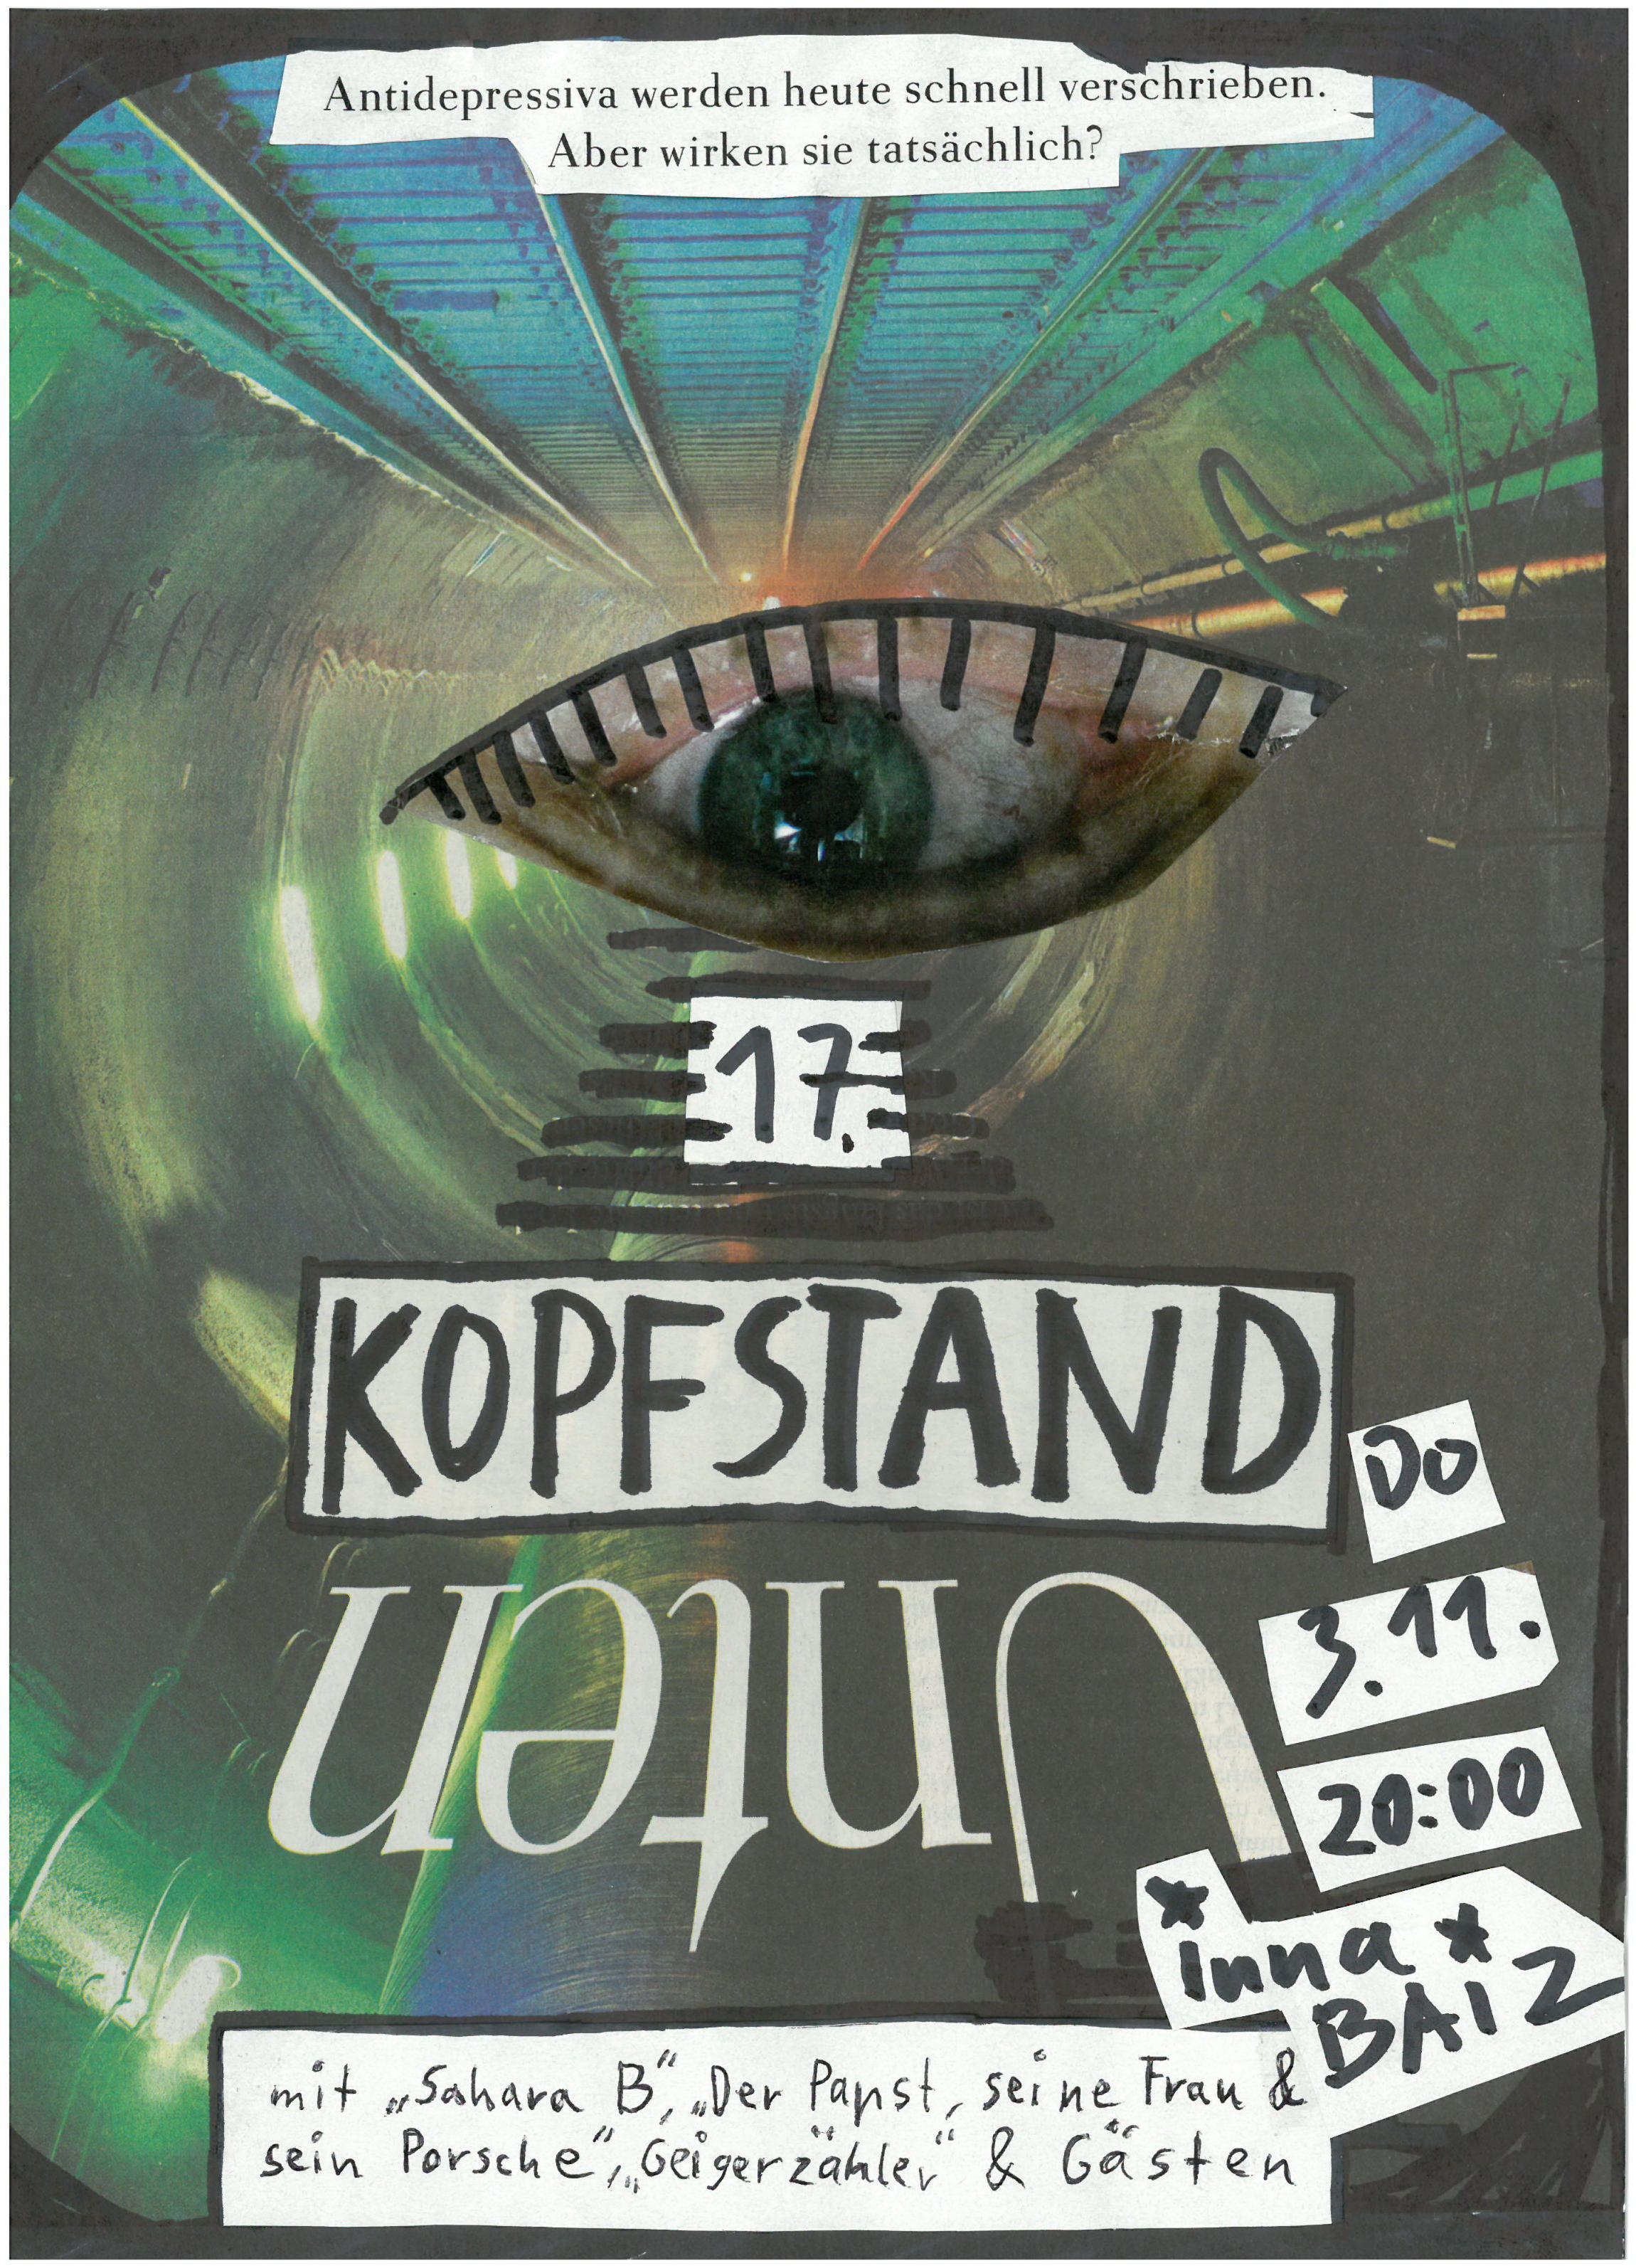 Kopfstand am 3. November 20:00 in der Baiz